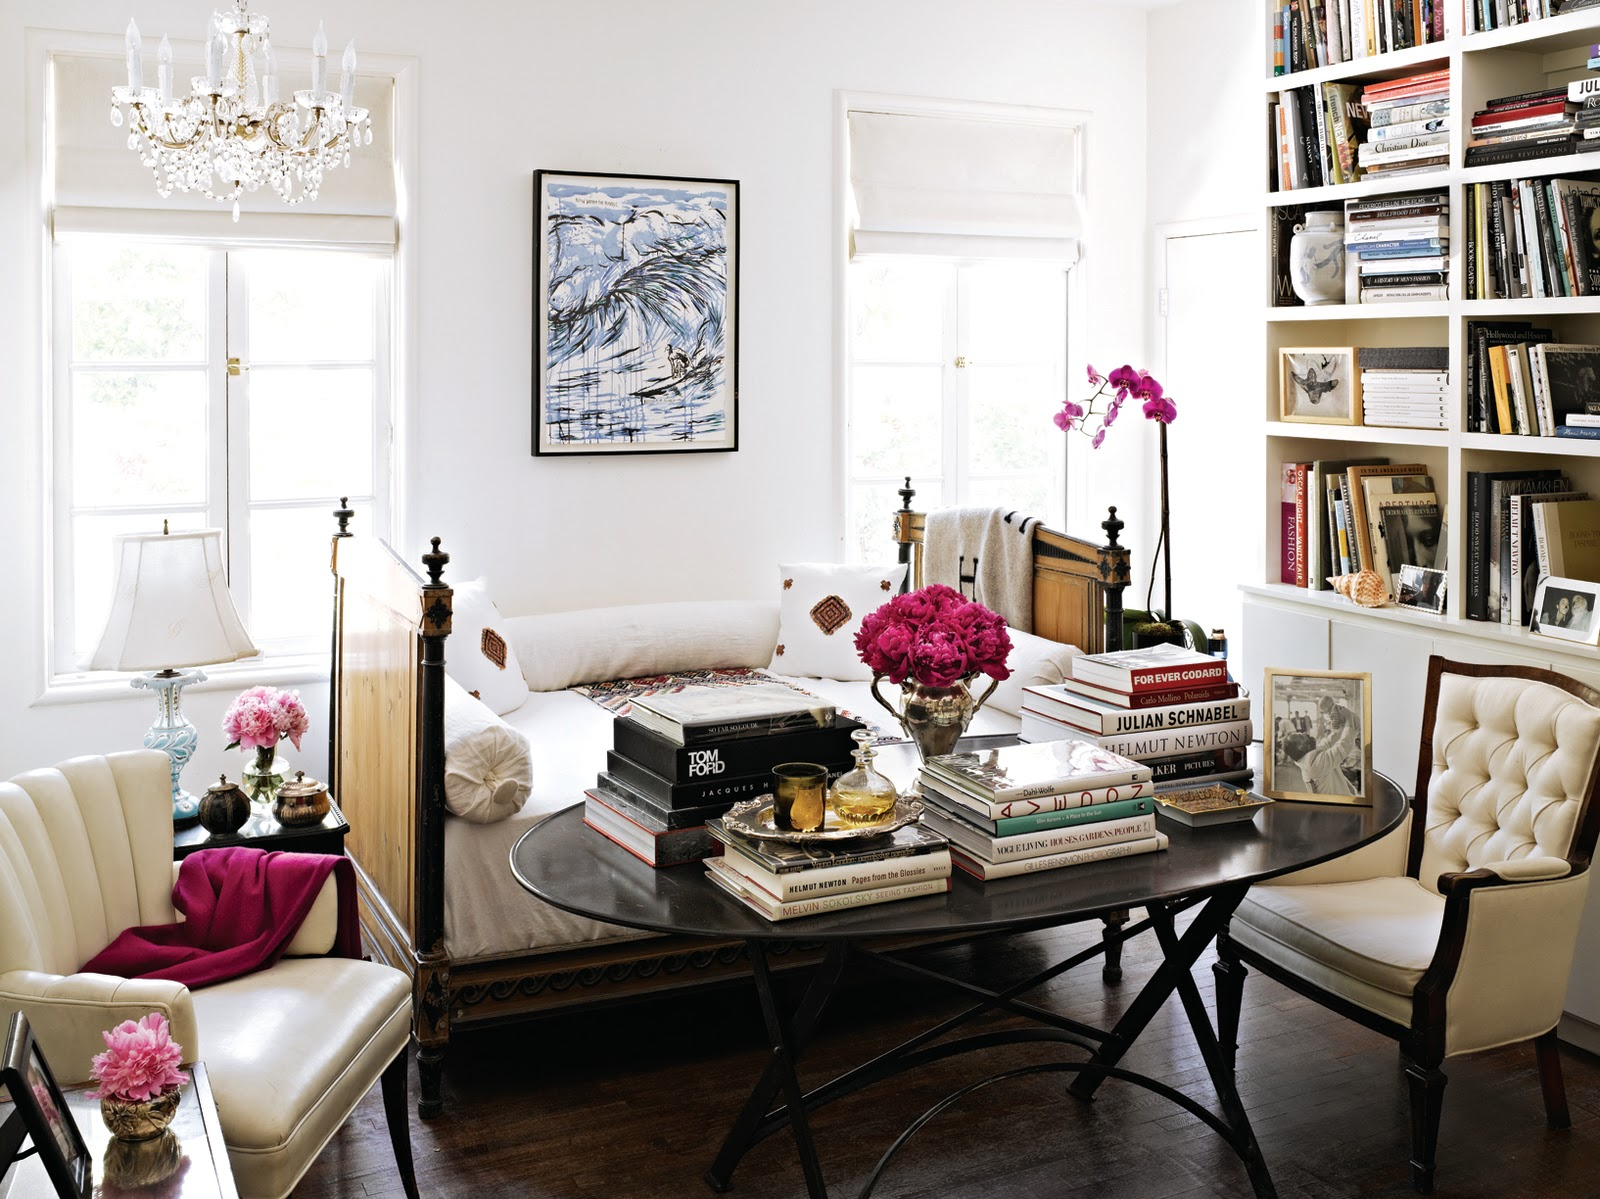 Decor How To: Coffee Table Books